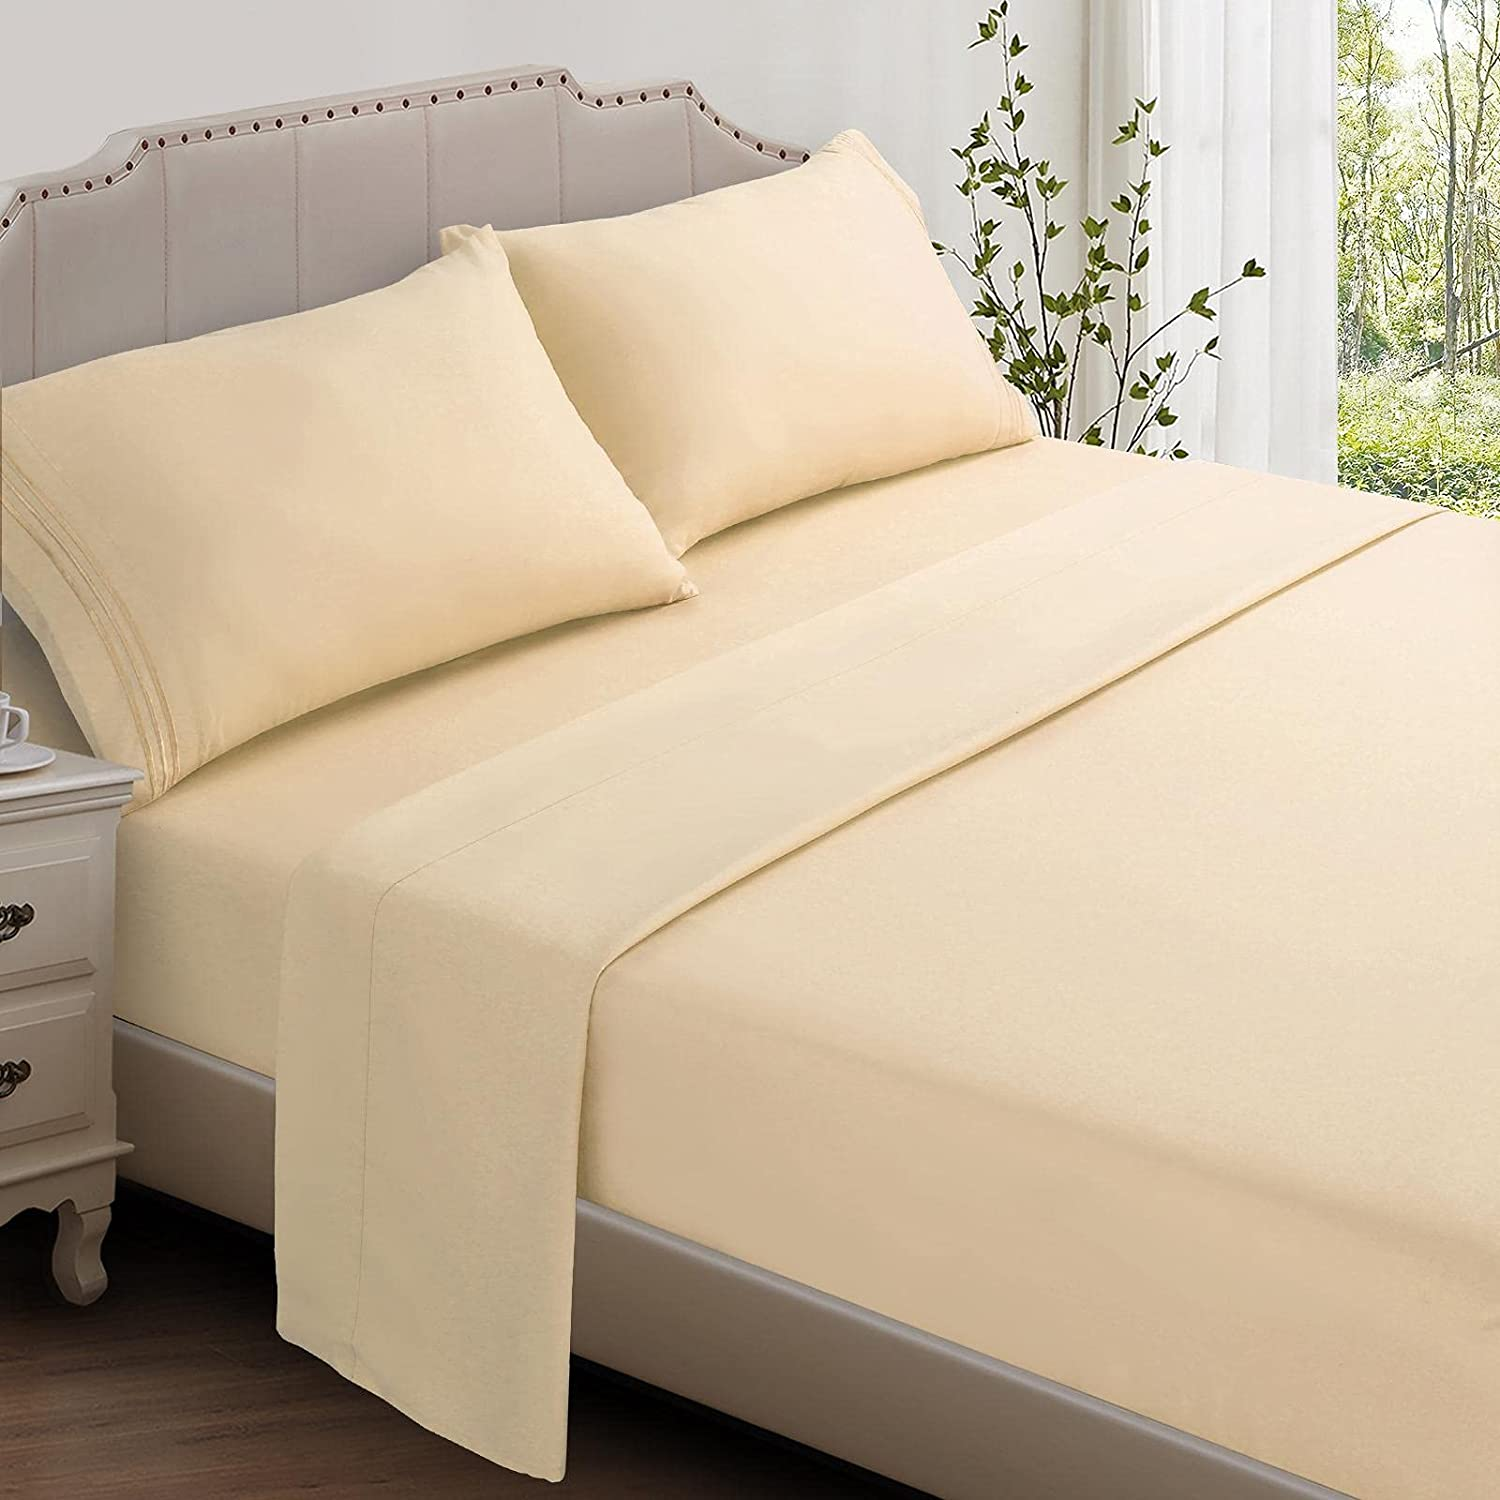 Industry No. 1 Luffield Super Soft Bed Sheet Set 18 Large-scale sale - Brushed Microfiber Luxury